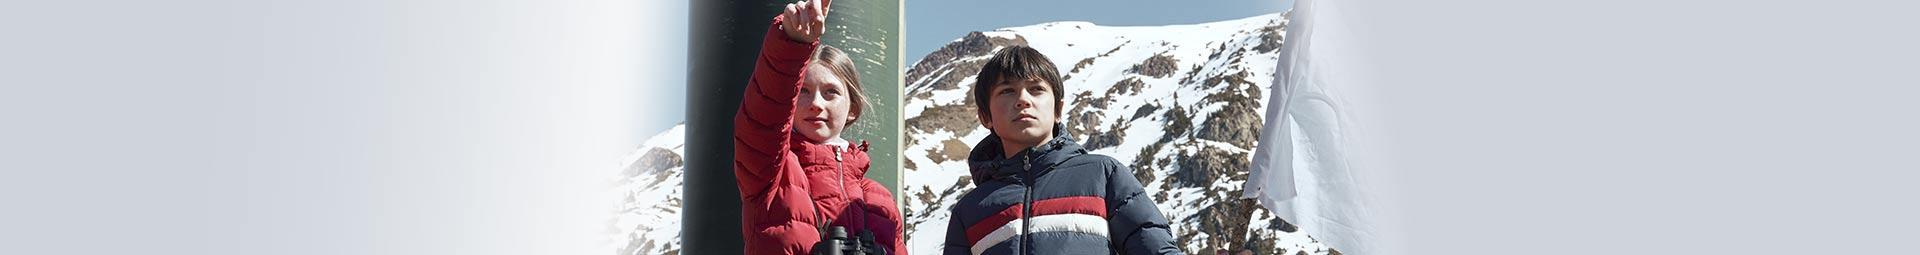 Pyrenex kids clothes collection : Down jackets, Parkas and Windcheaters for children, girl or boy.